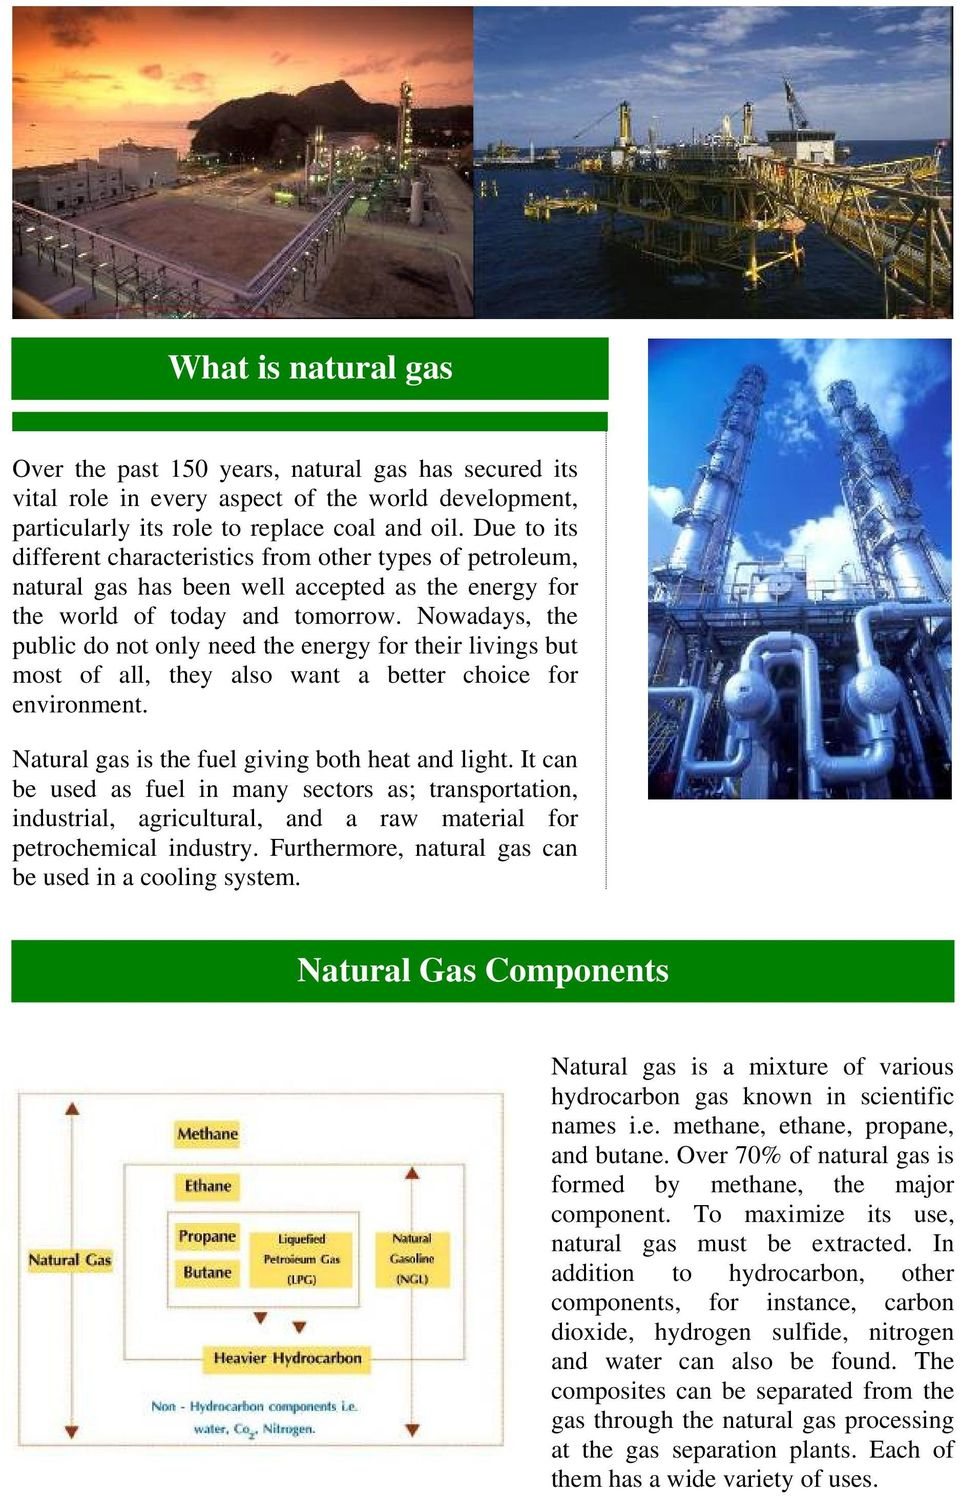 Nowadays, the public do not only need the energy for their livings but most of all, they also want a better choice for environment. Natural gas is the fuel giving both heat and light.